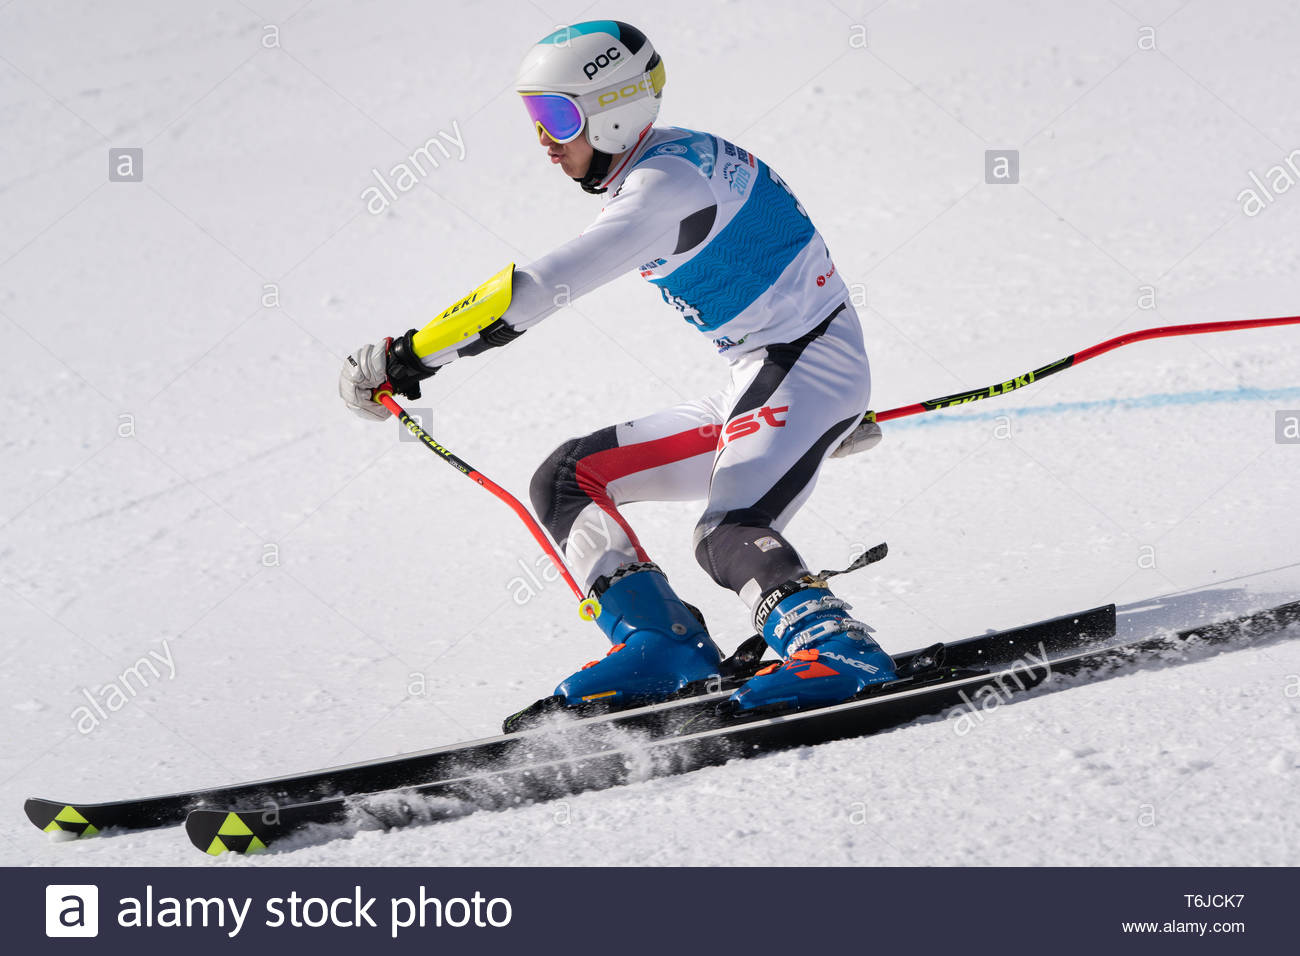 KAMCHATKA PENINSULA, RUSSIA - APR 1, 2019: Russian Alpine Skiing Cup, International Ski Federation (FIS) Championship, giant slalom. Mount skier Bilma - Stock Image